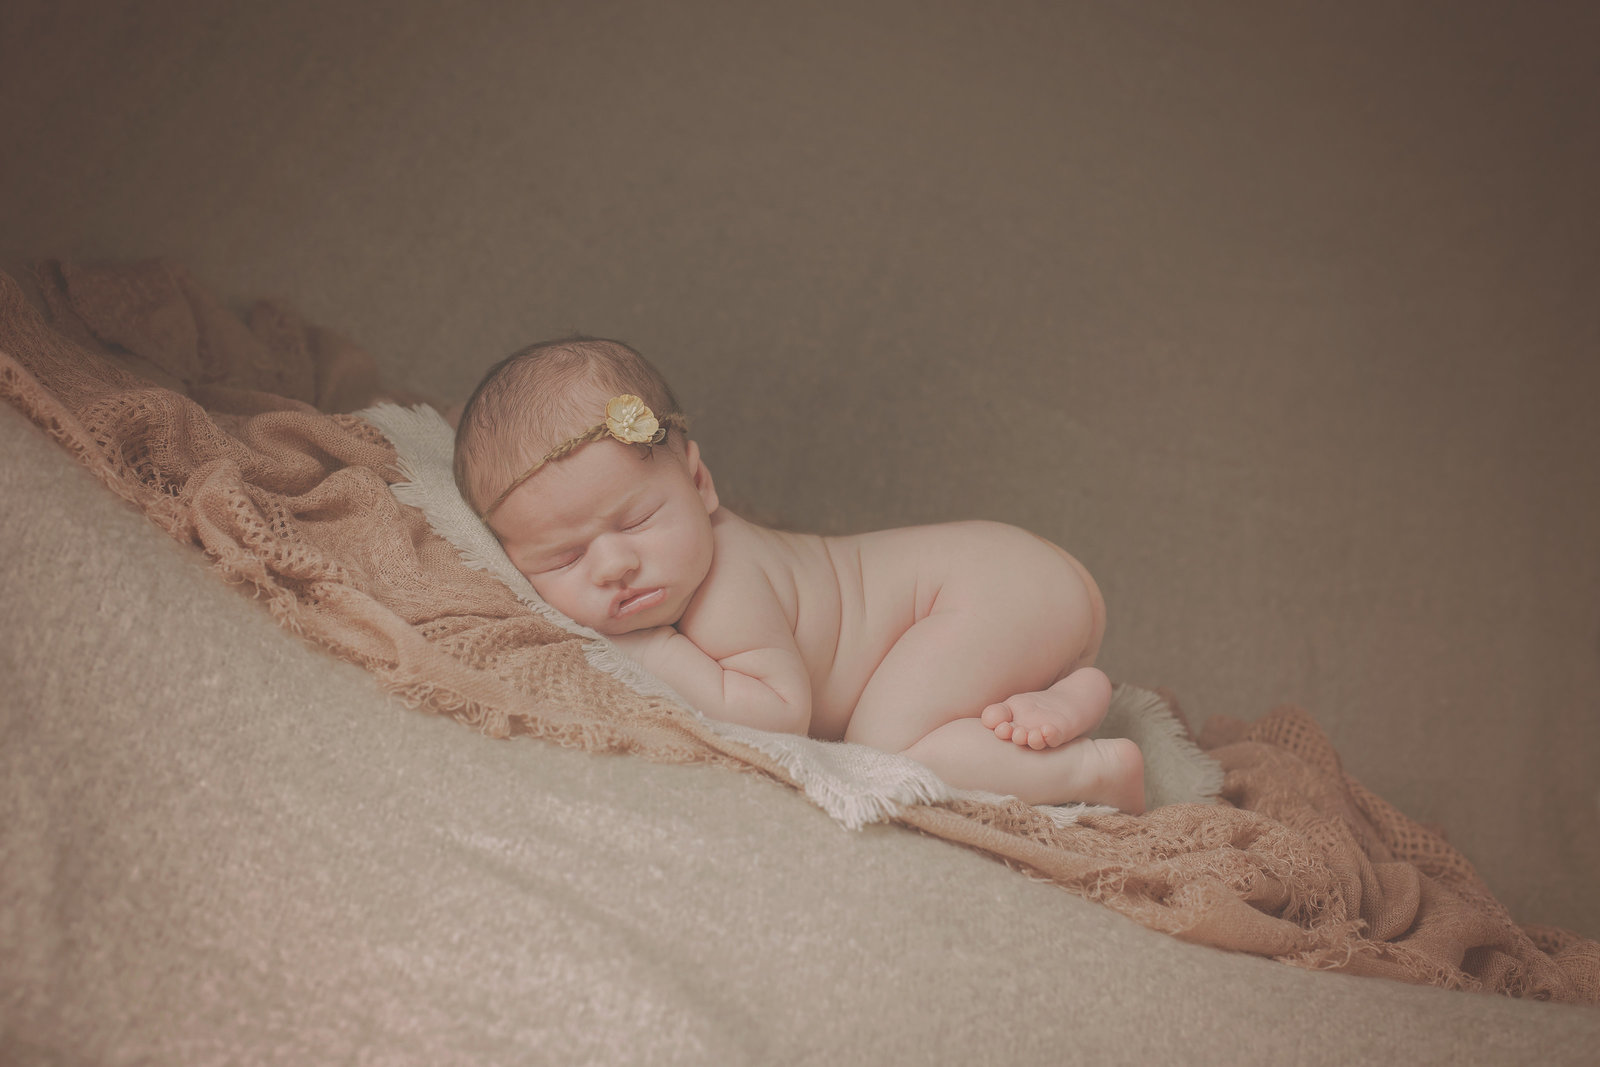 poughkeepsie newborn baby girl sleeping on fabric layers on mohair blanket with small headband naked by Hudson Valley professional photographer Autumn Photography photo studio in Cornwall NY